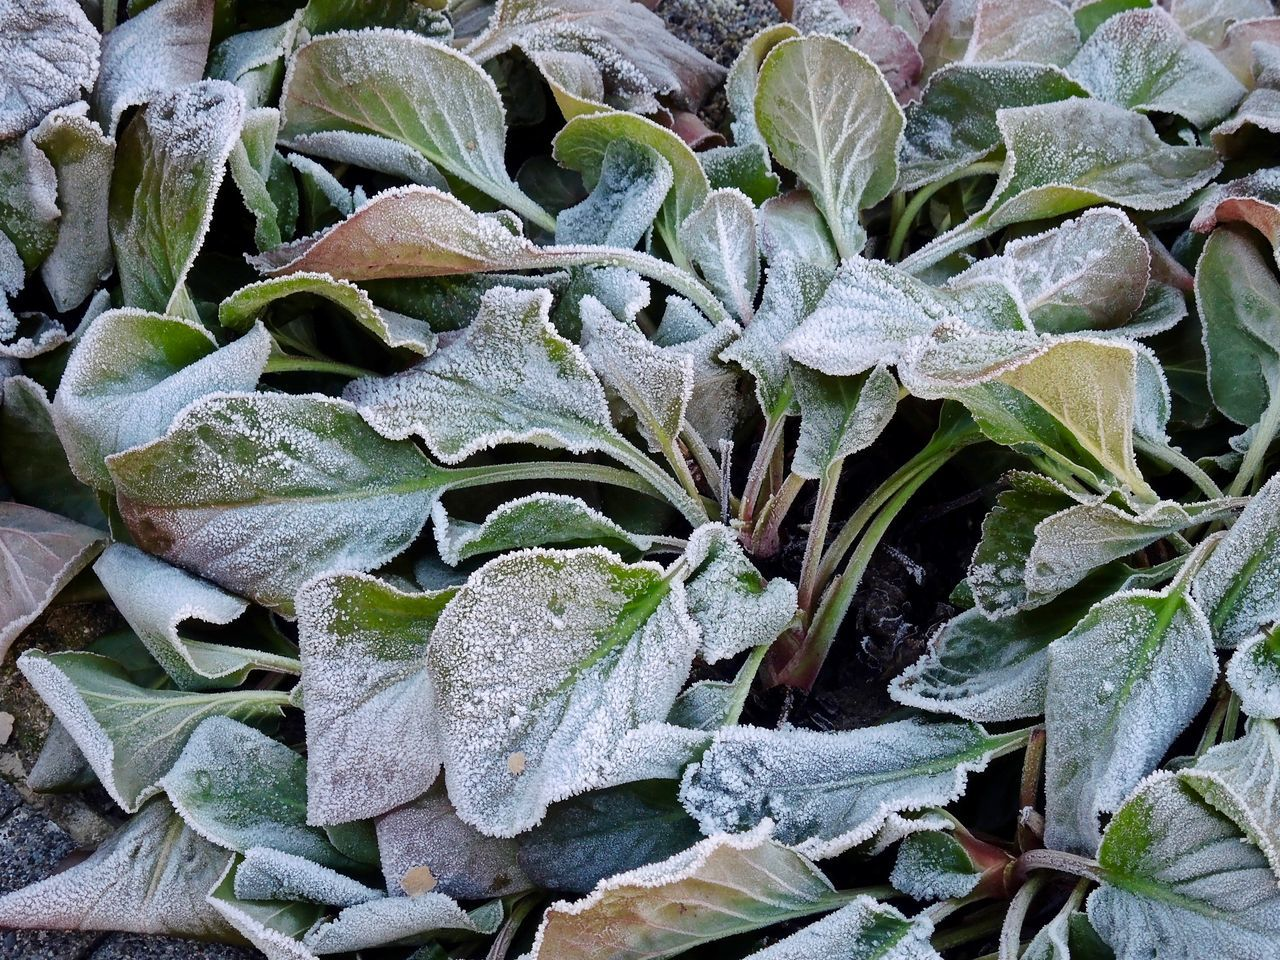 Beauty In Nature Close-up Day Freshness Growth Hoarfrost Nature No People Outdoors Plant White Frost